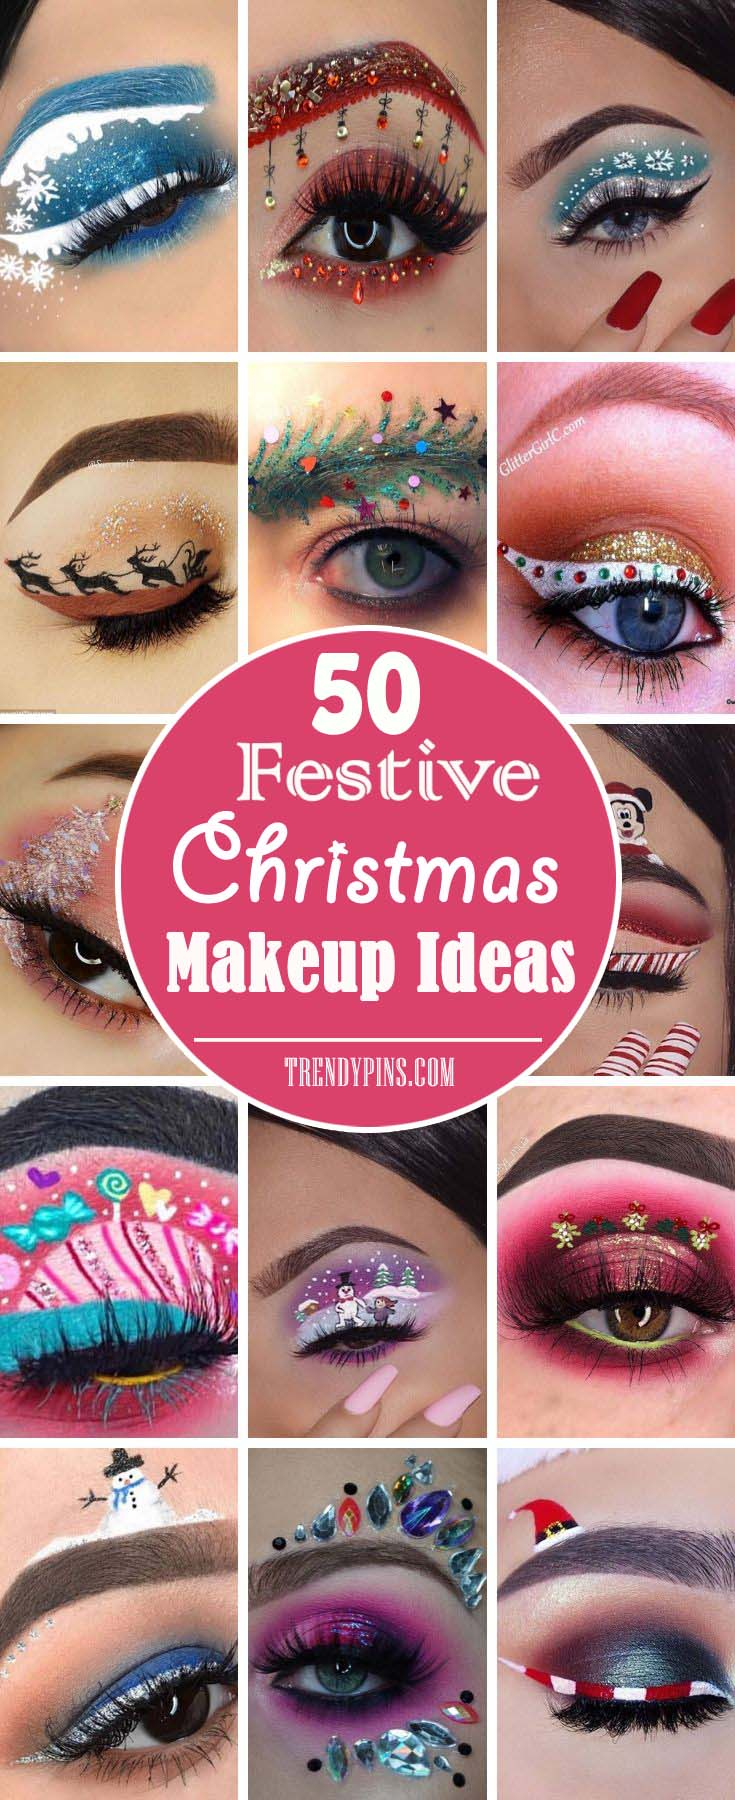 50 Festive Christmas Makeup Ideas For Beauty Lovers